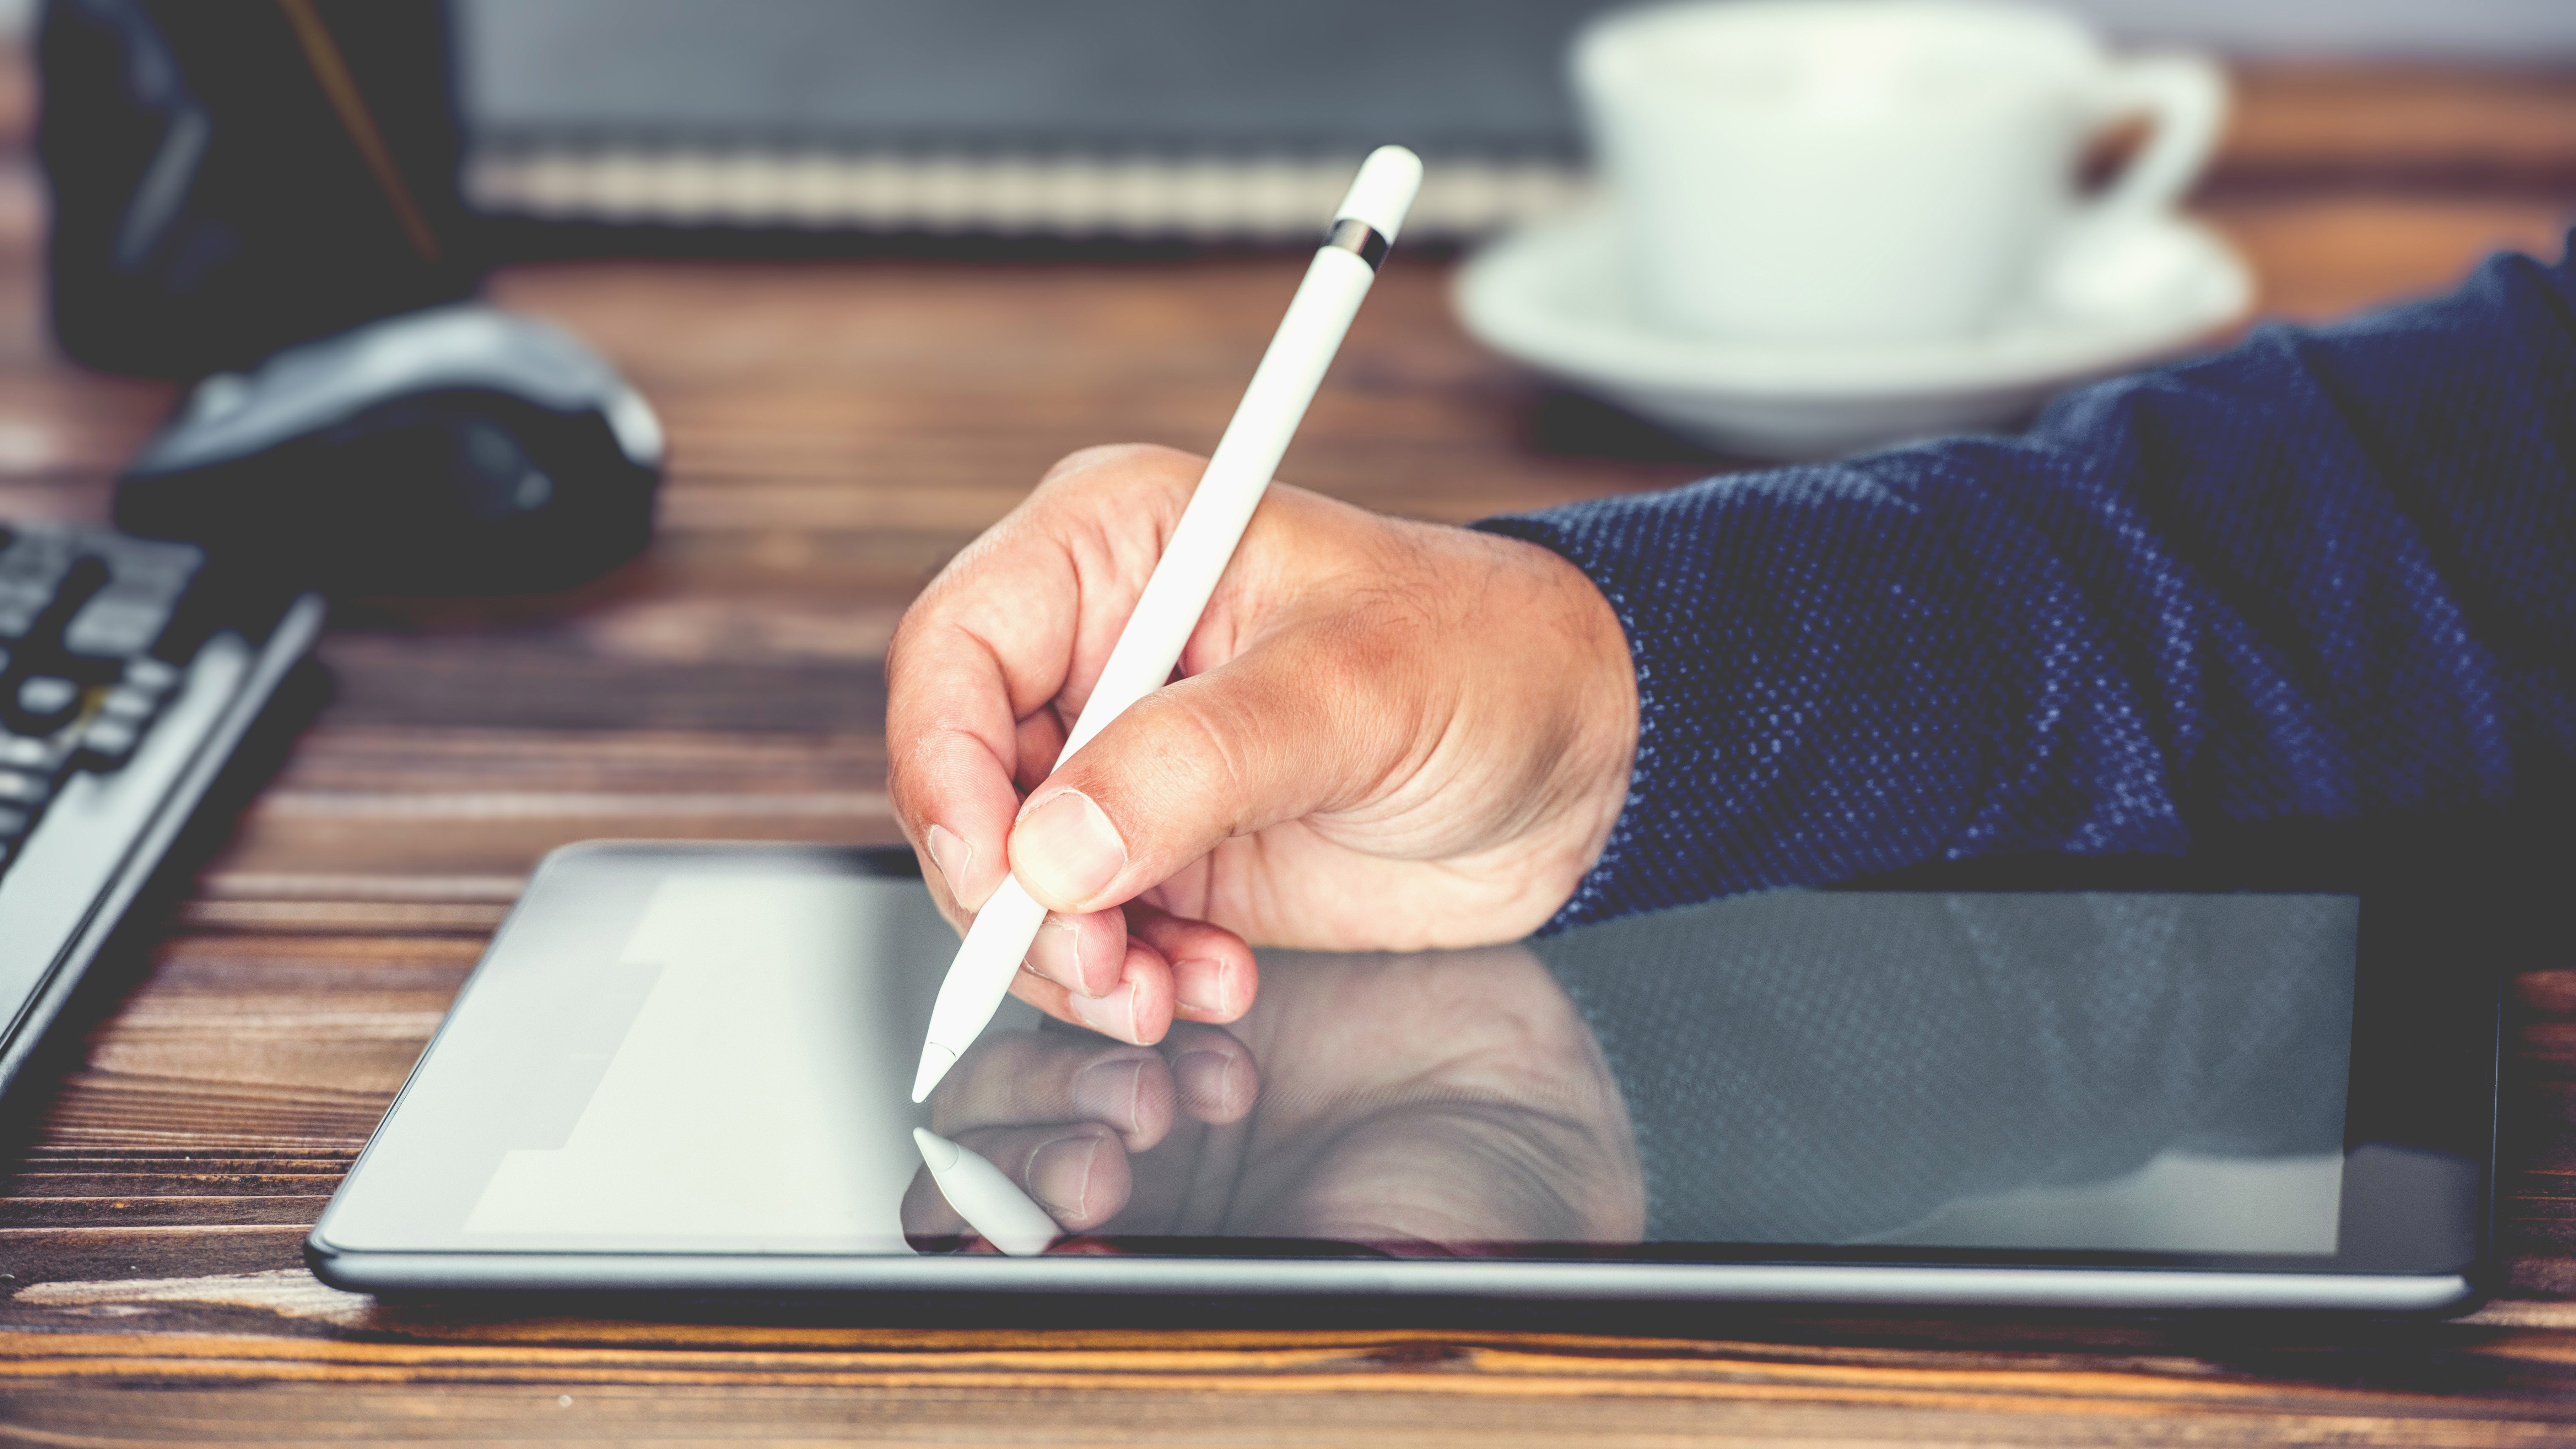 man signing on a tablet with a stylus pen at a wooden desk